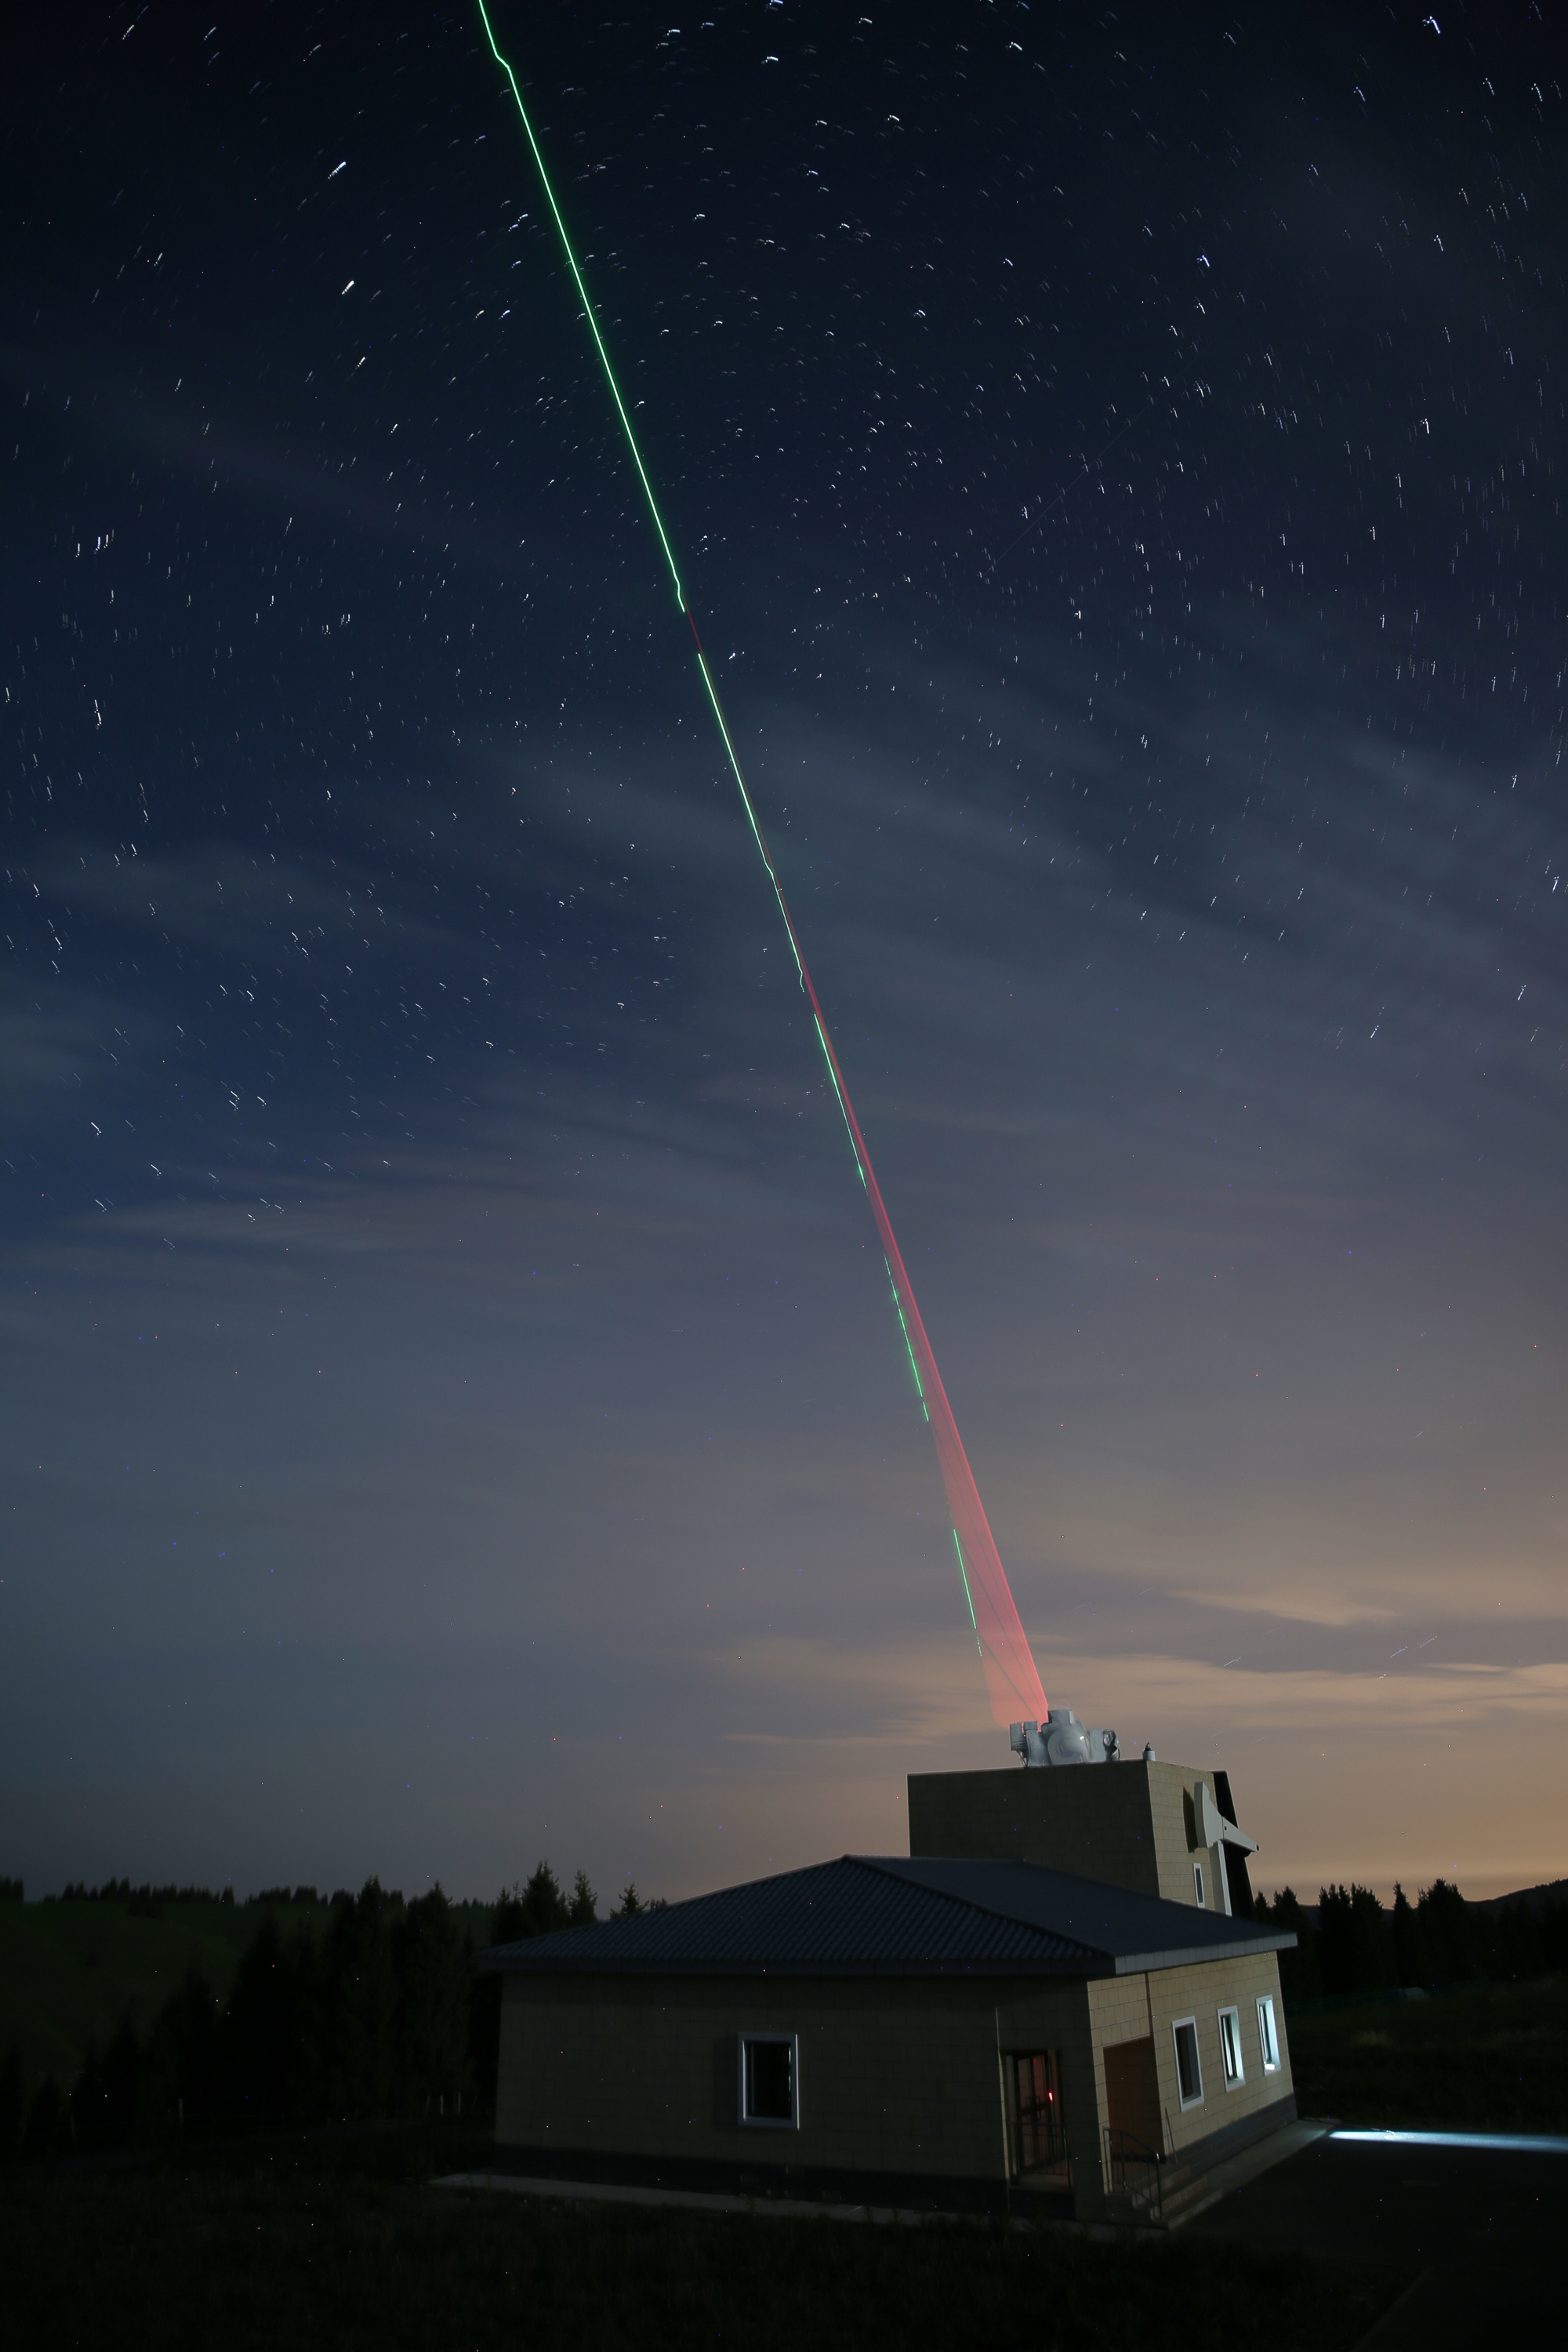 Photons being transmitted to space